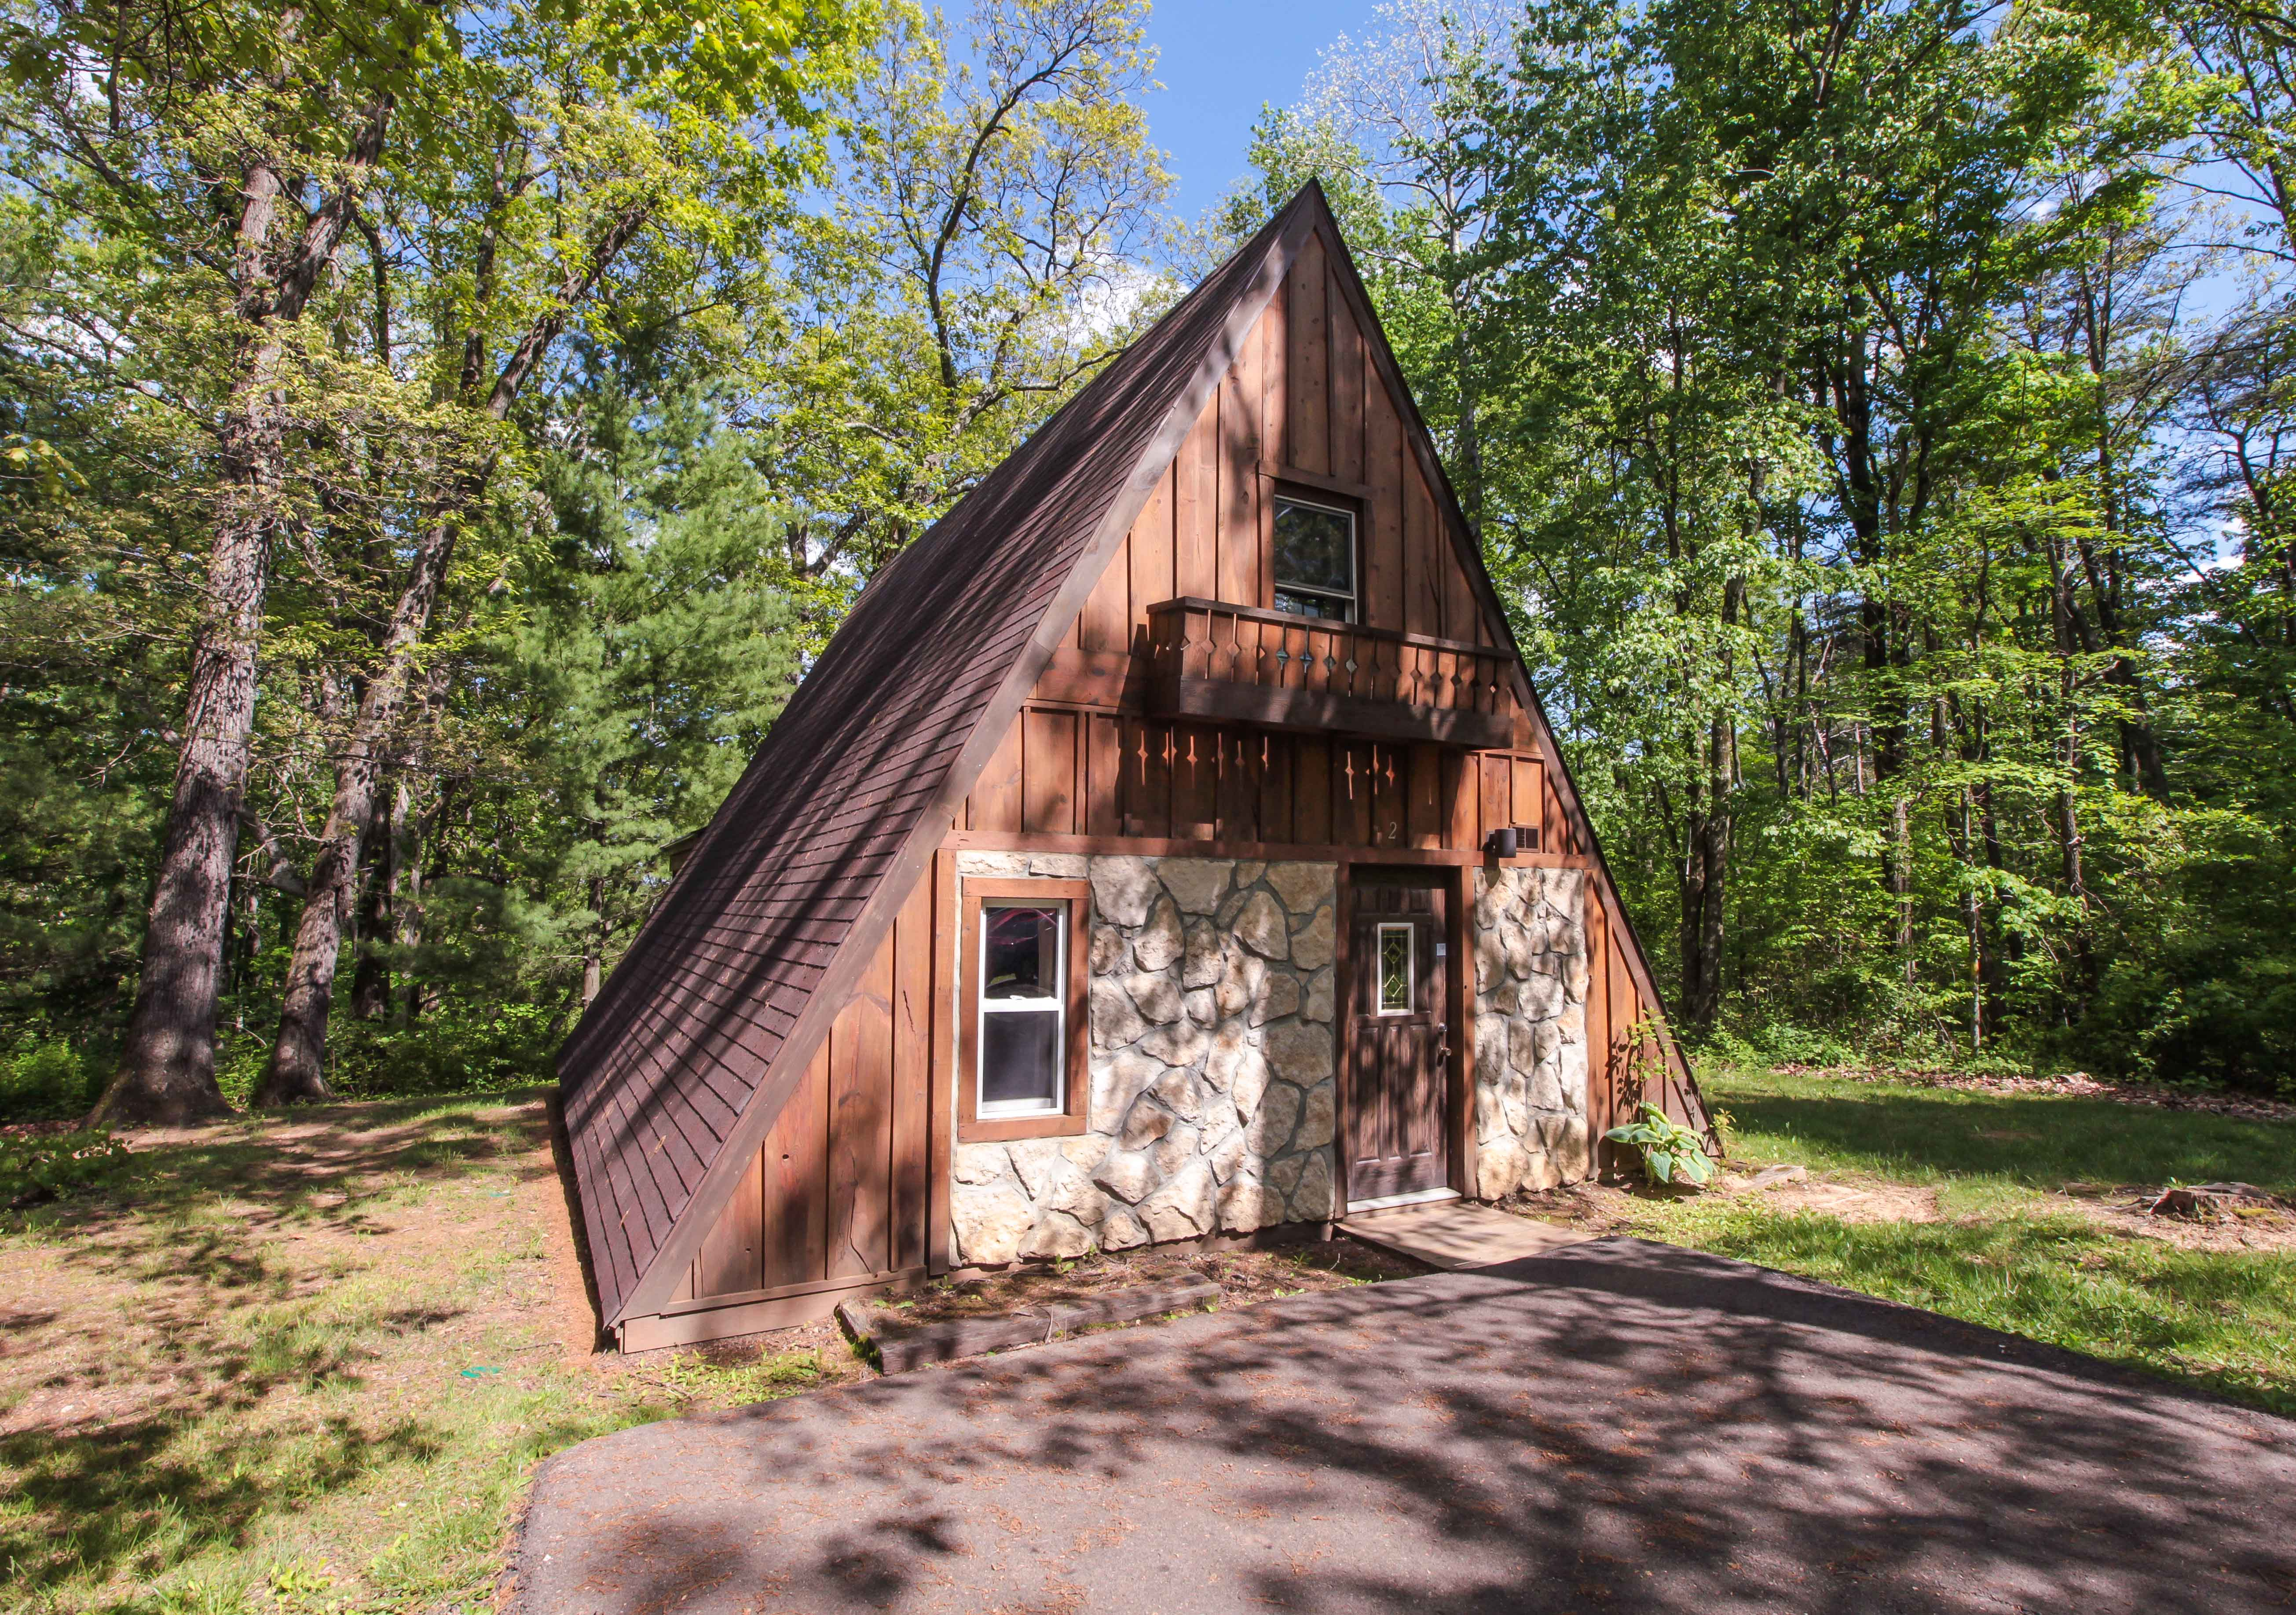 utmk mo in check an bigcedar cabin awesome cabins these unforgettable stay ohio romantic com for out missouri getaways utmv